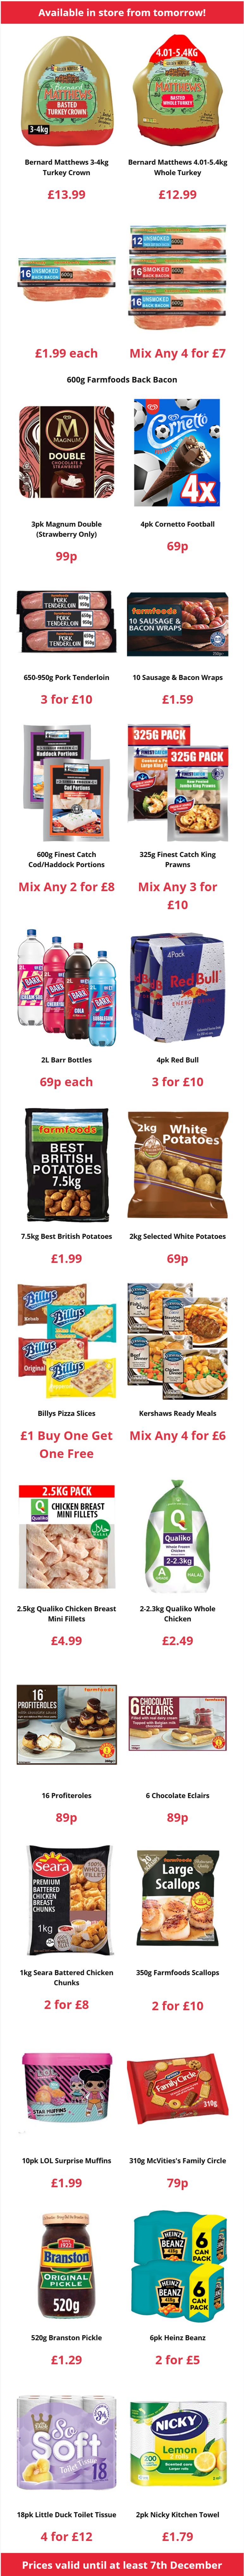 Farmfoods Offers from 27/11/2020 Preview